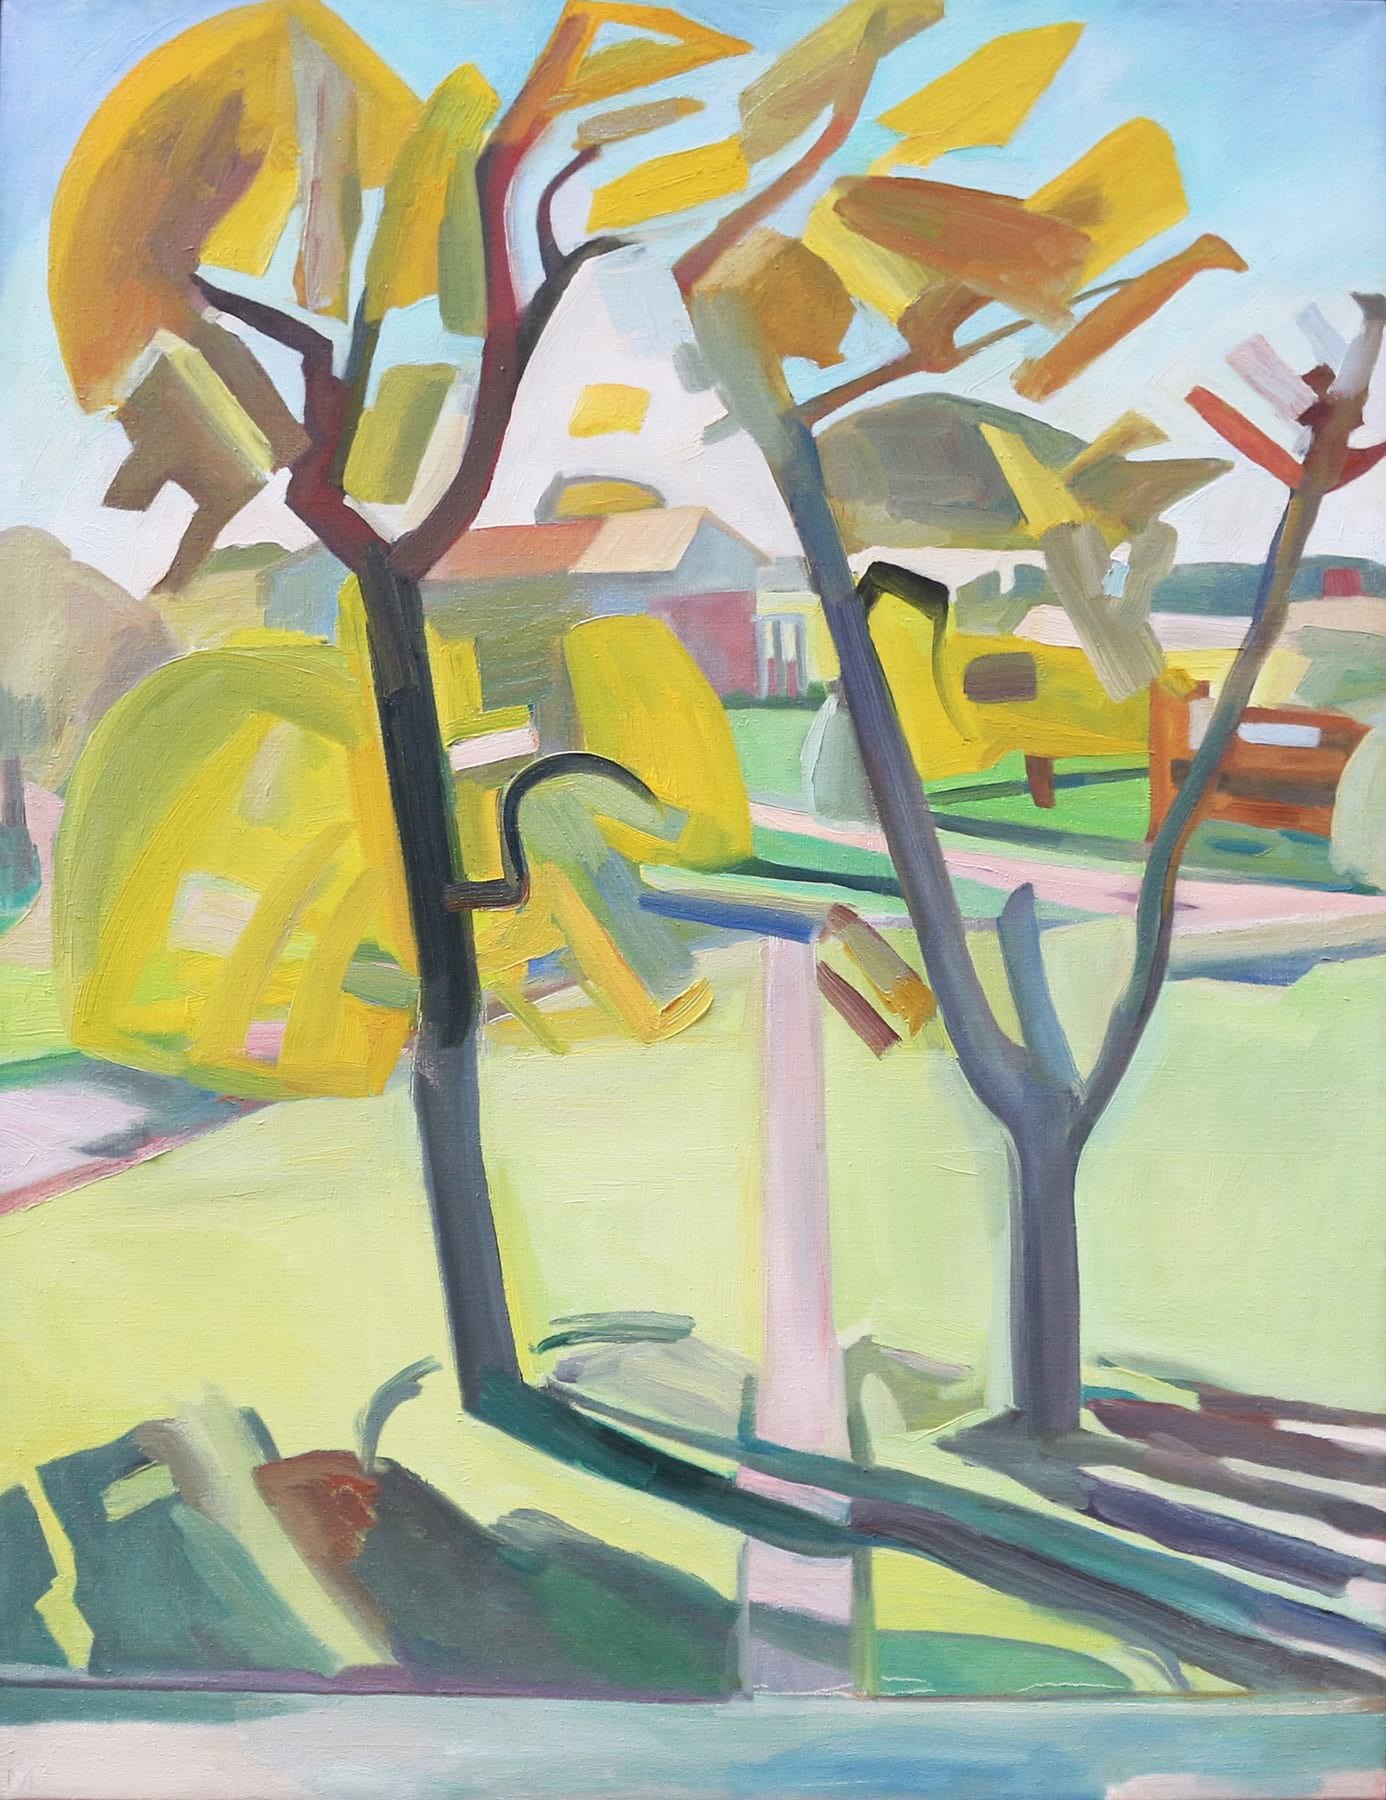 Oil on canvas painting showing a pair of trees near a community by Martha Armstrong